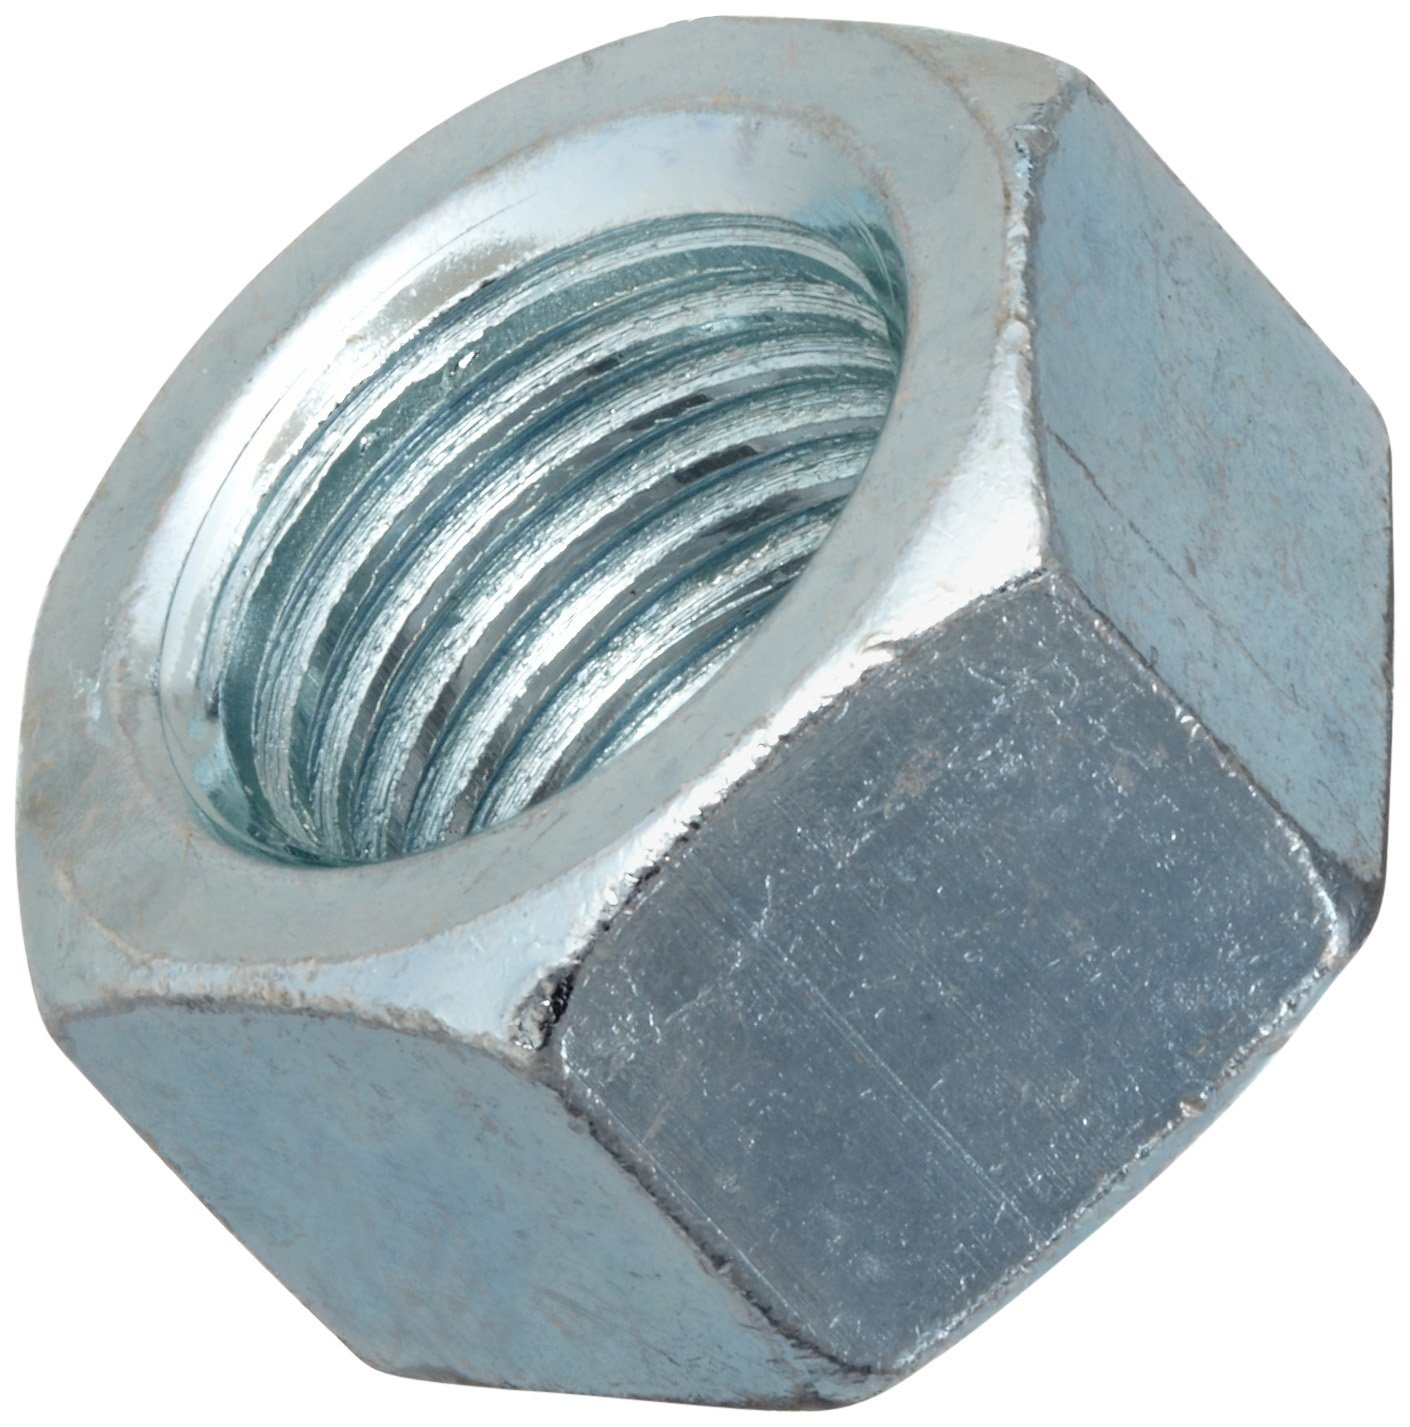 Steel Hex Nut, Zinc Plated Finish, Grade 2, ASME B18.2.2, 3/8''-16 Thread Size, 9/16'' Width Across Flats, 21/64'' Thick (Pack of 100) by Small Parts